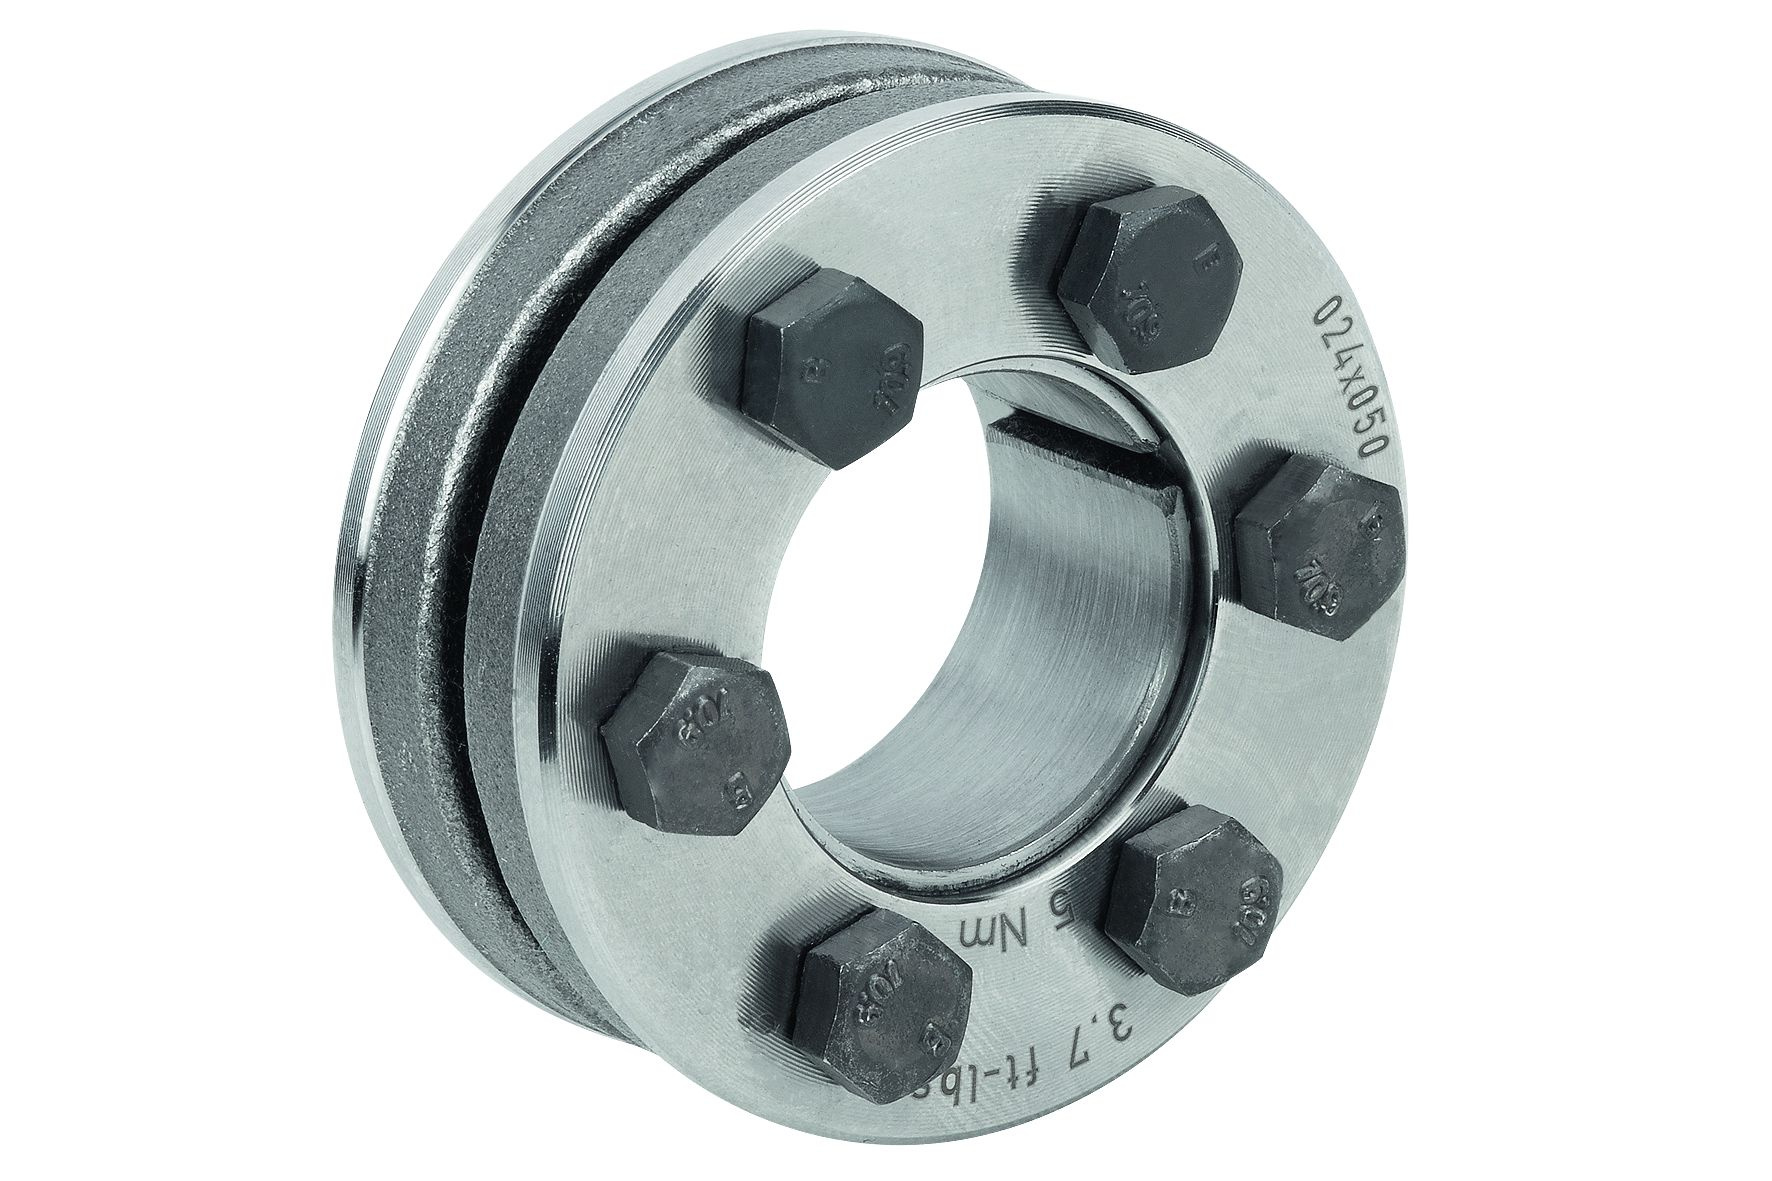 Material: Steel. Version: Bright. Note: Shrink disc to connect a hollow shaft to a shaft. They are a...